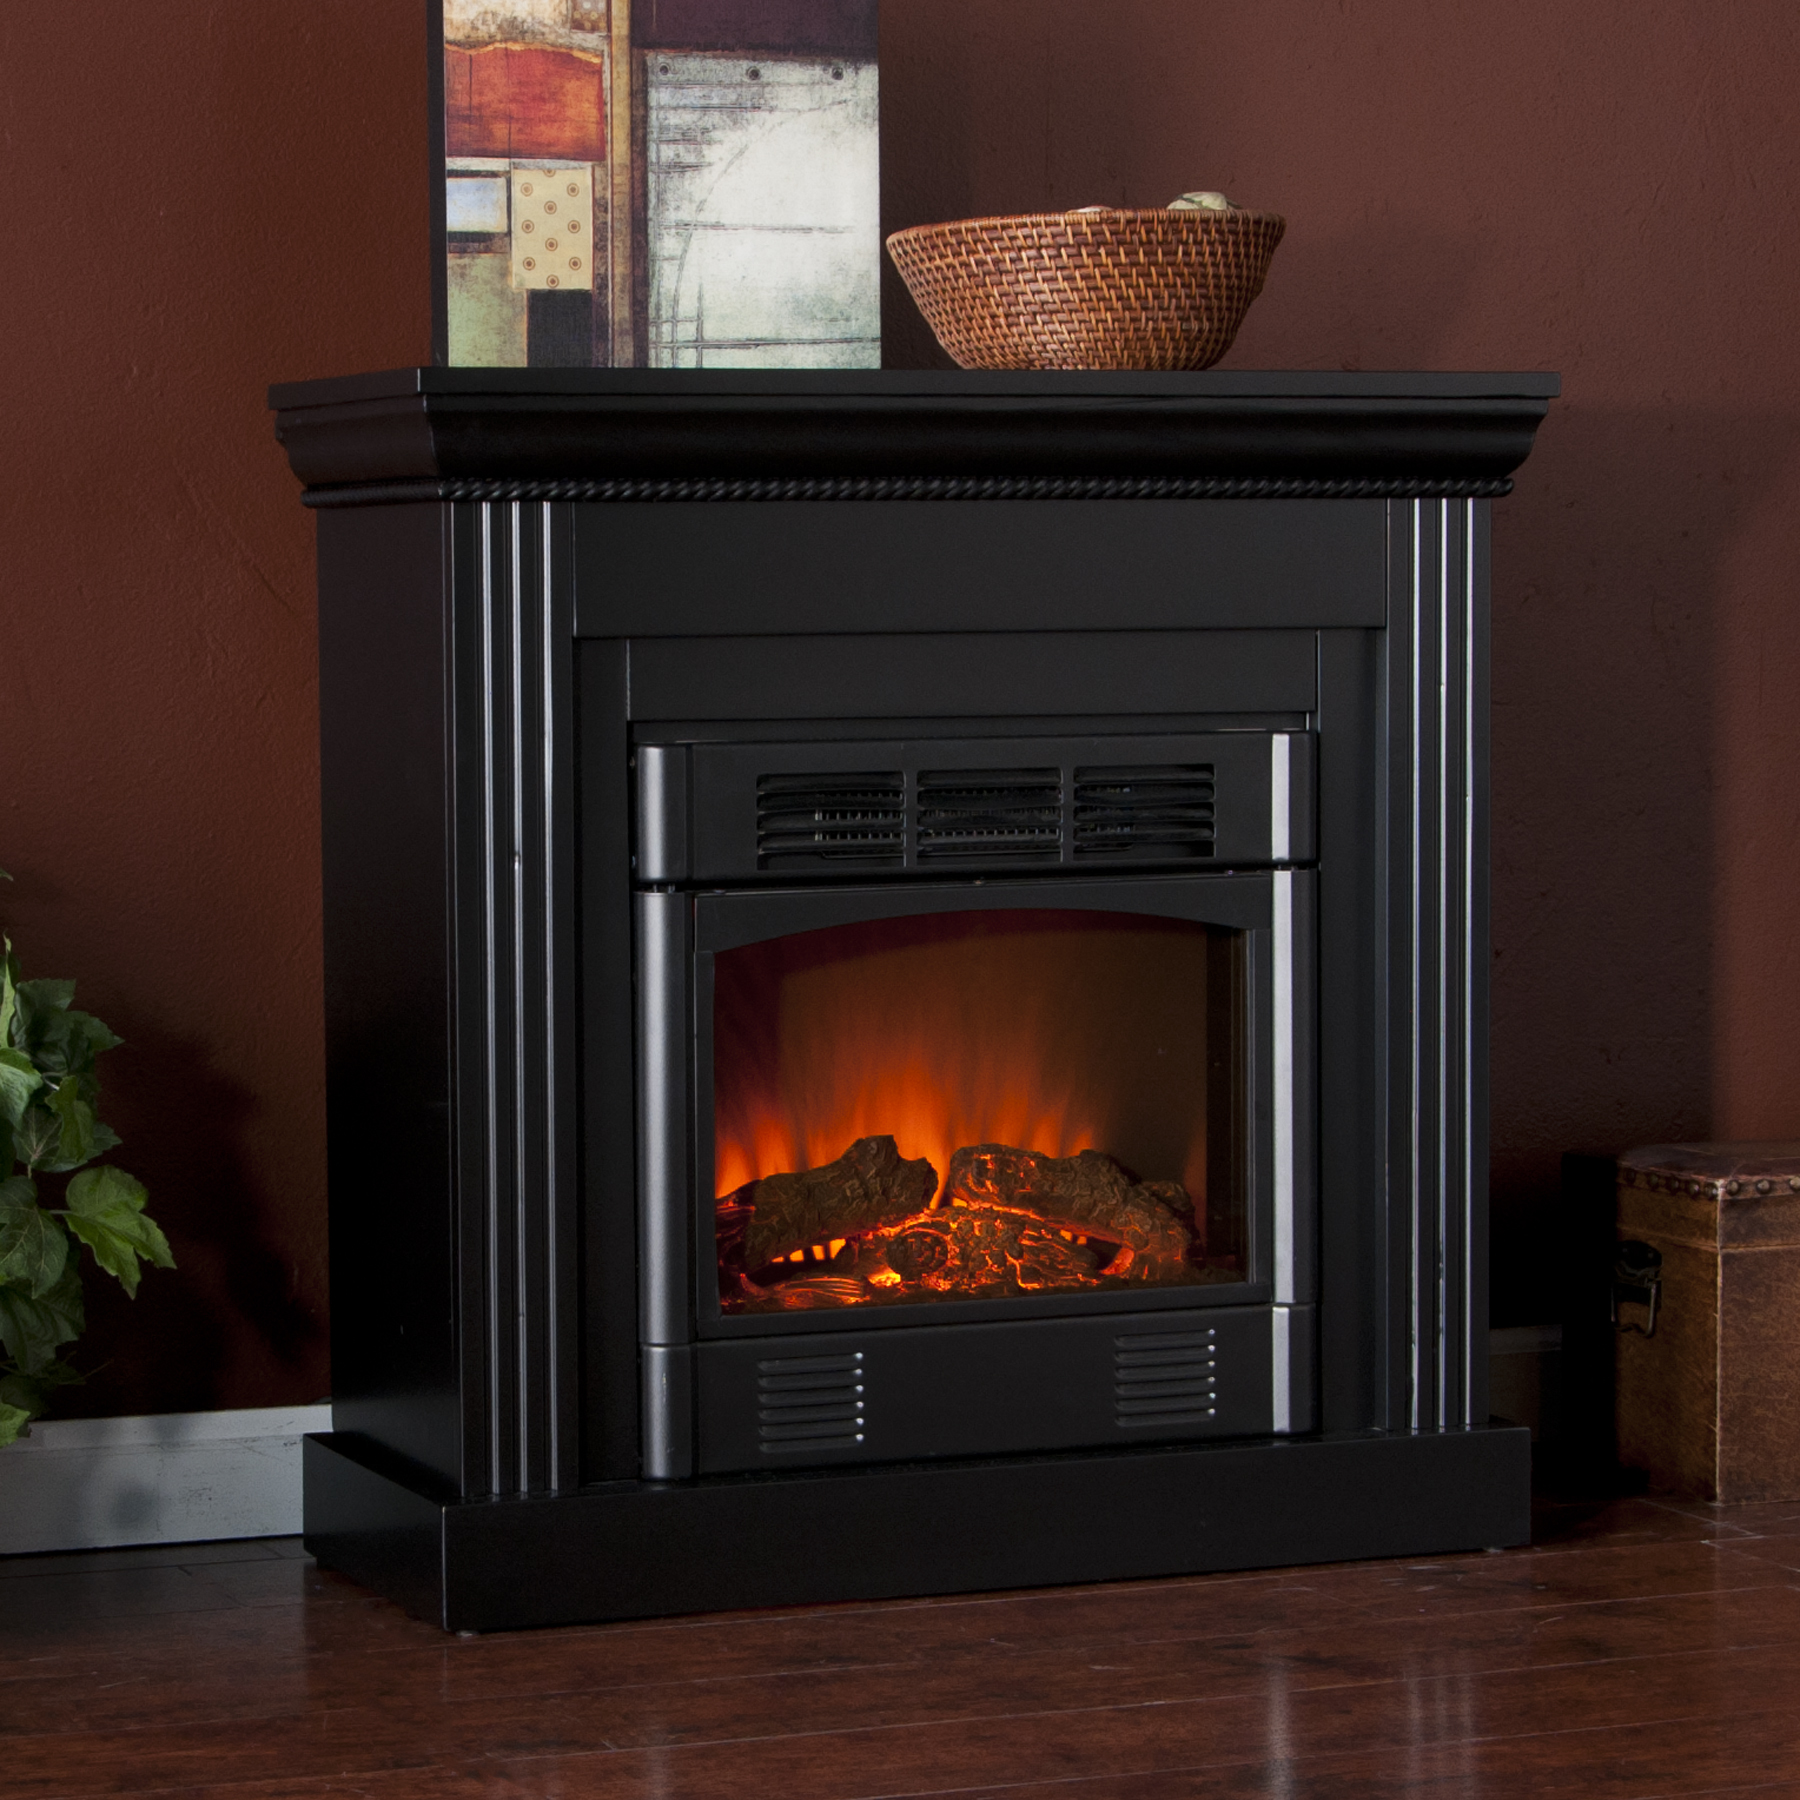 Holly Amp Martin Bastrop Petite Convertible Electric Fireplace Black Holly Amp Martin 37 036